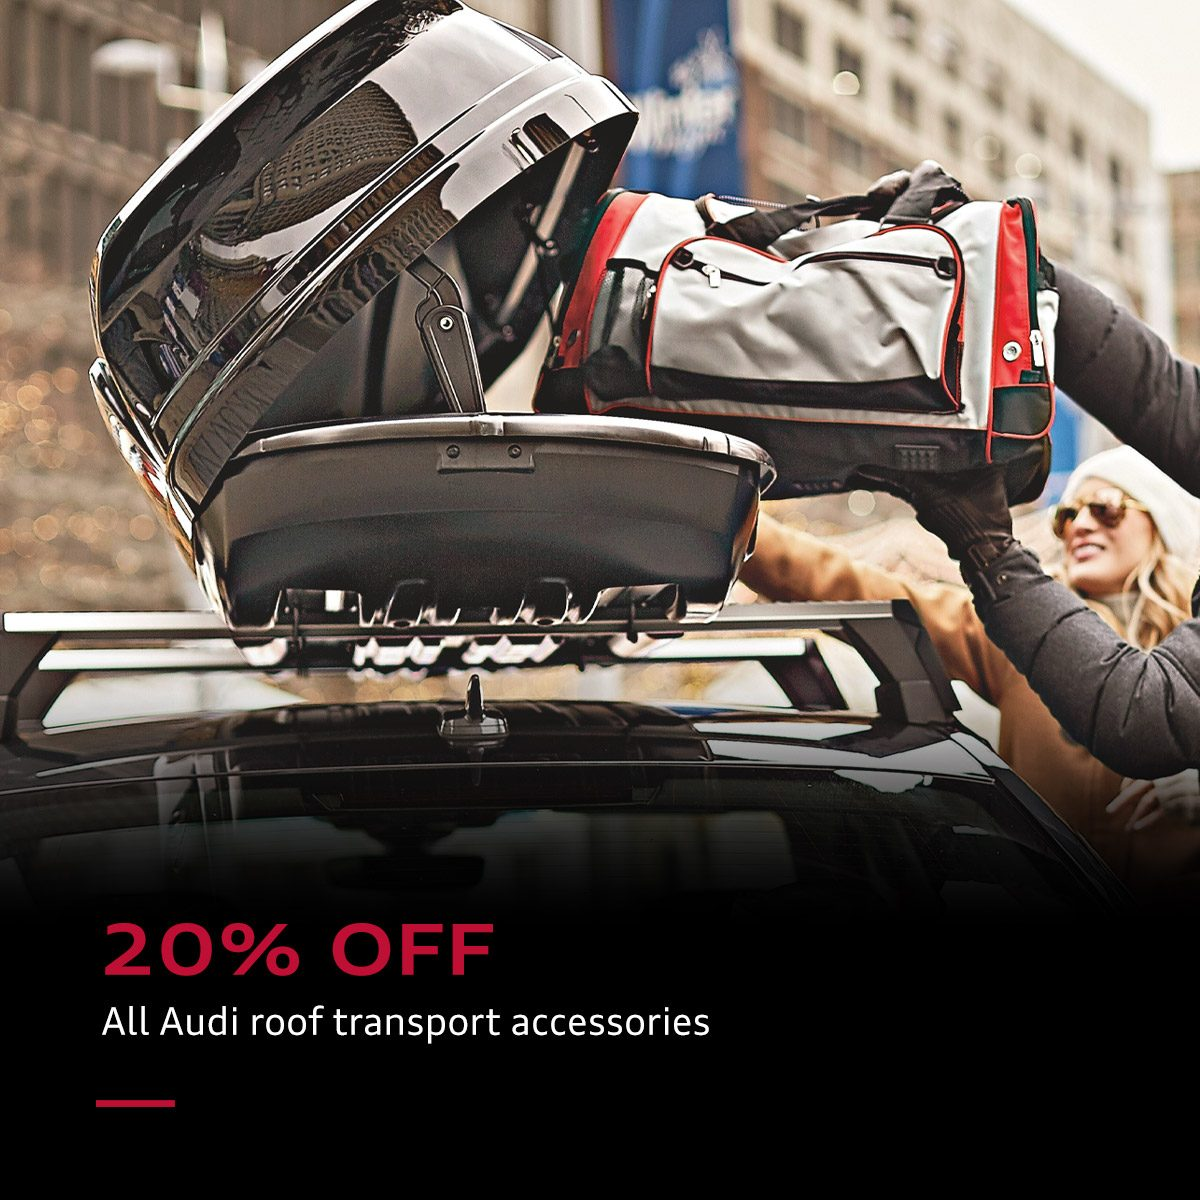 Roof Transport Accessories 20% off